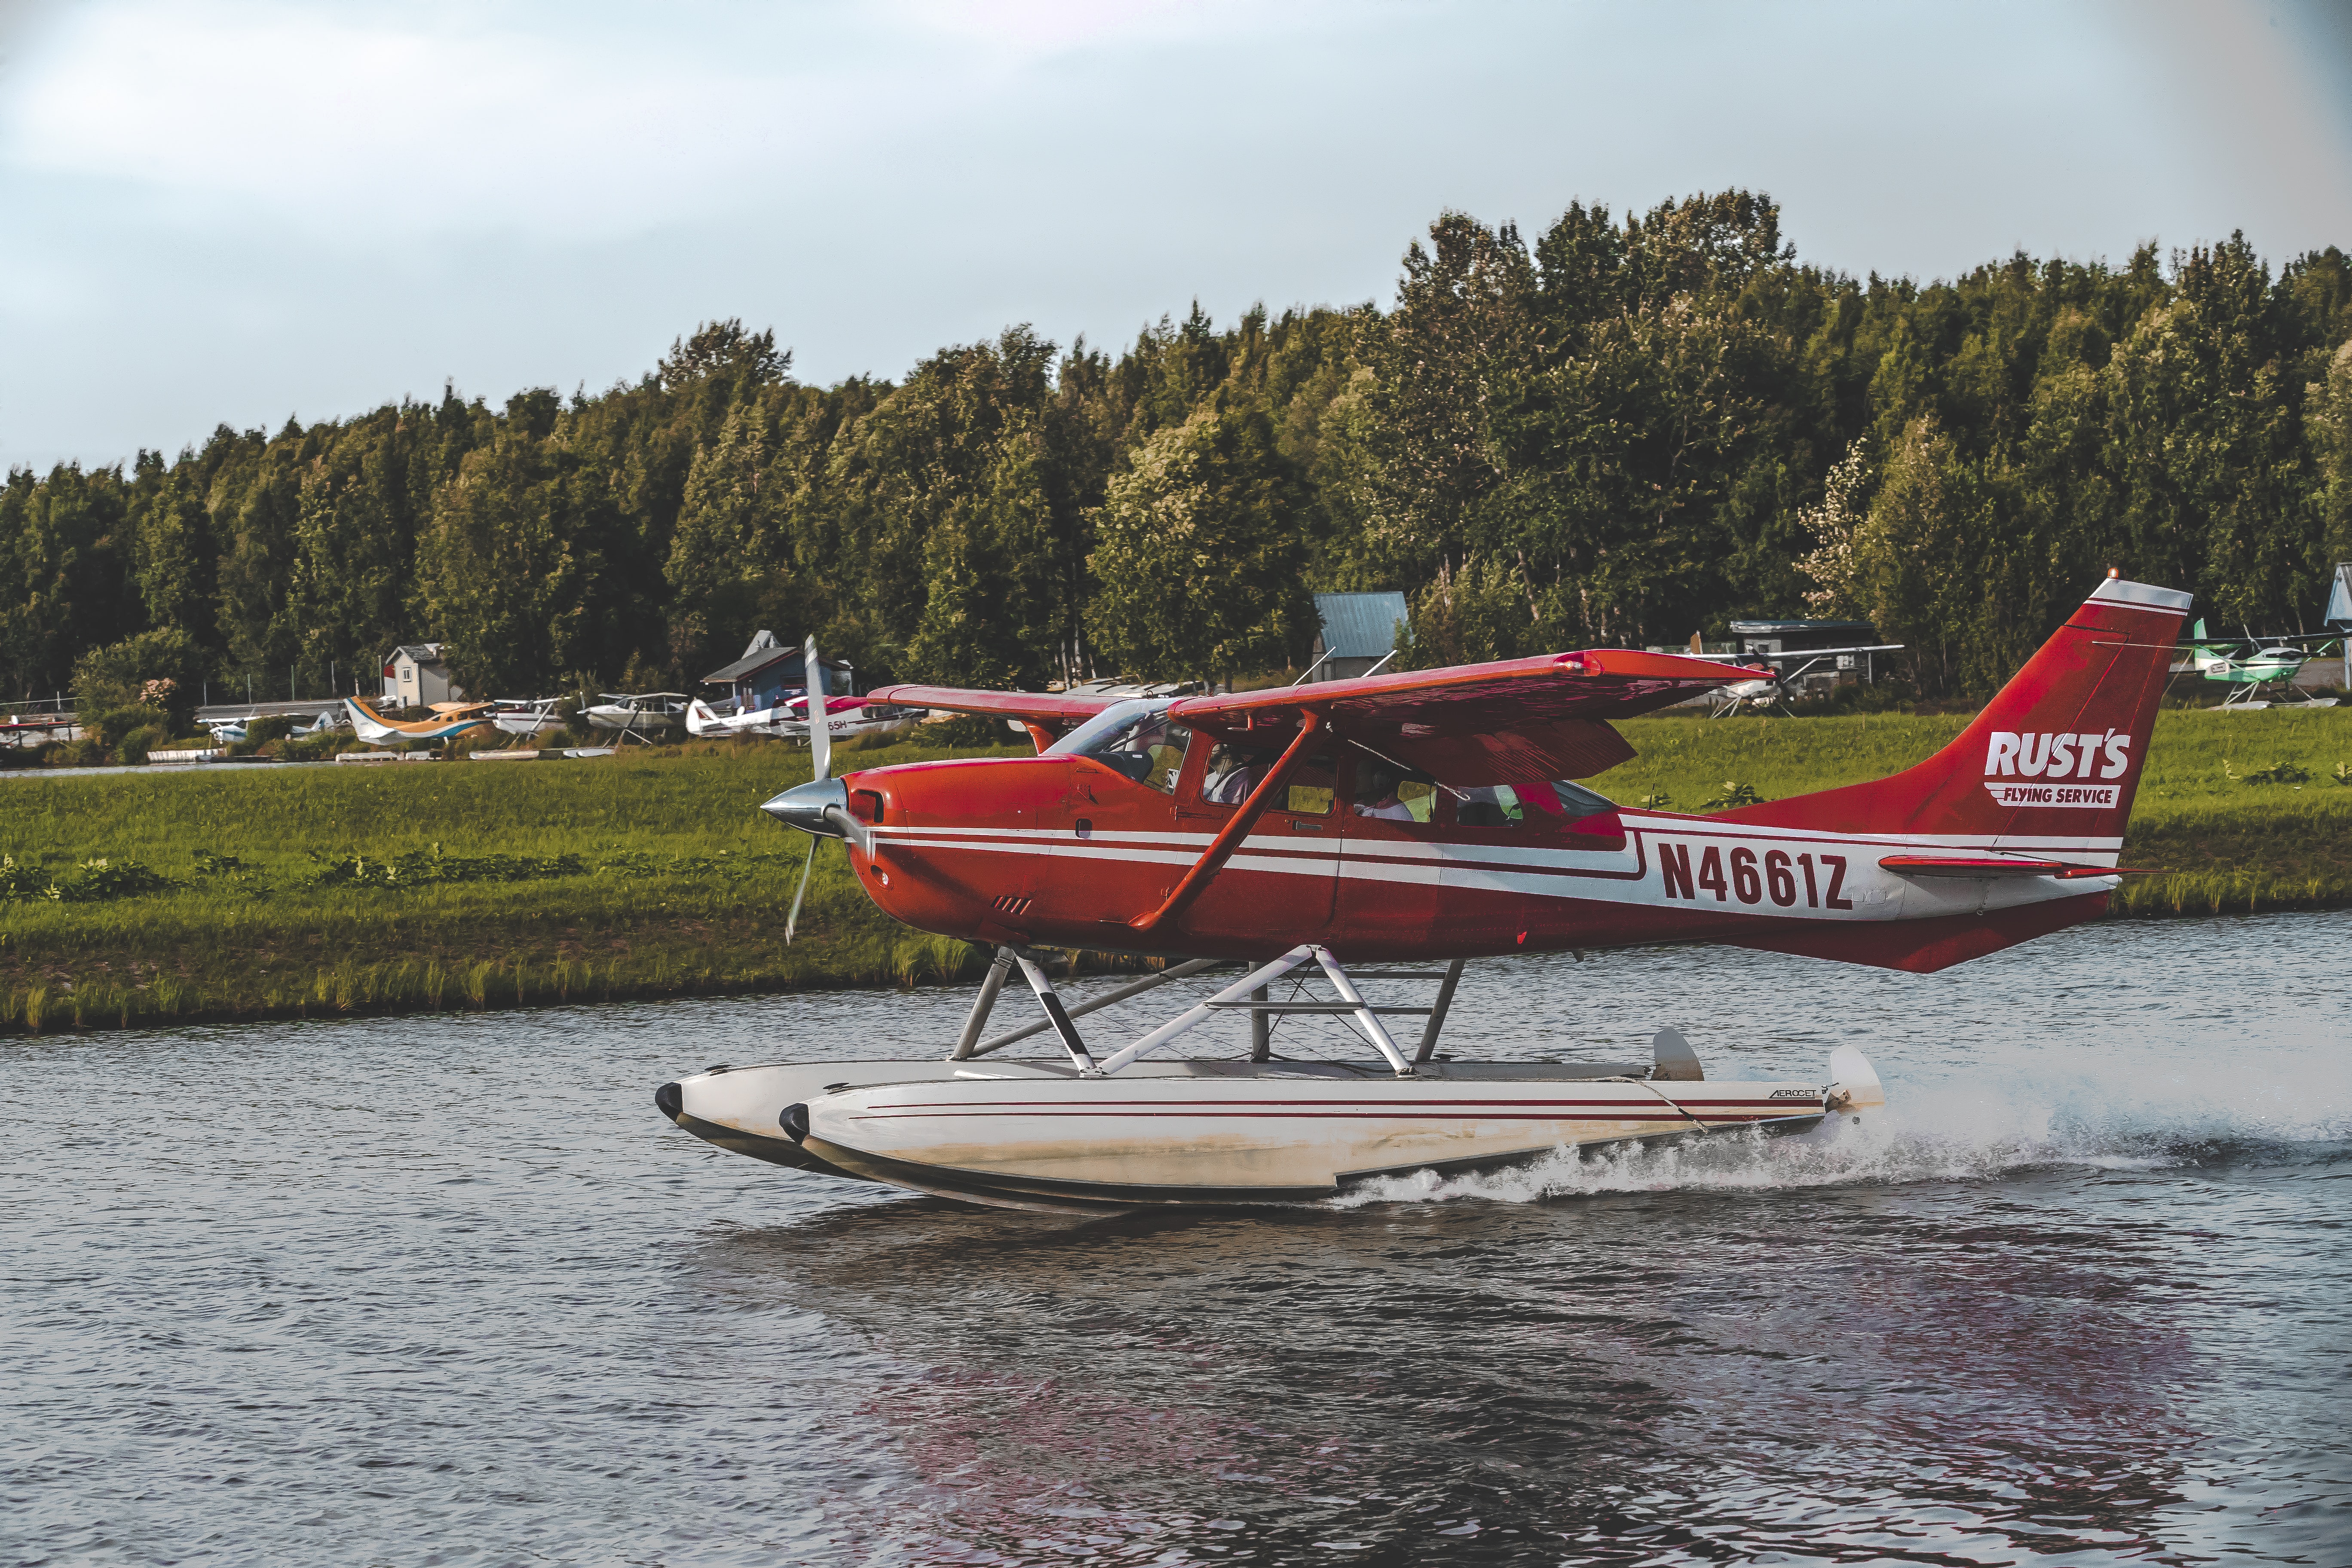 red and white Rusts N46612 biplane on body of water